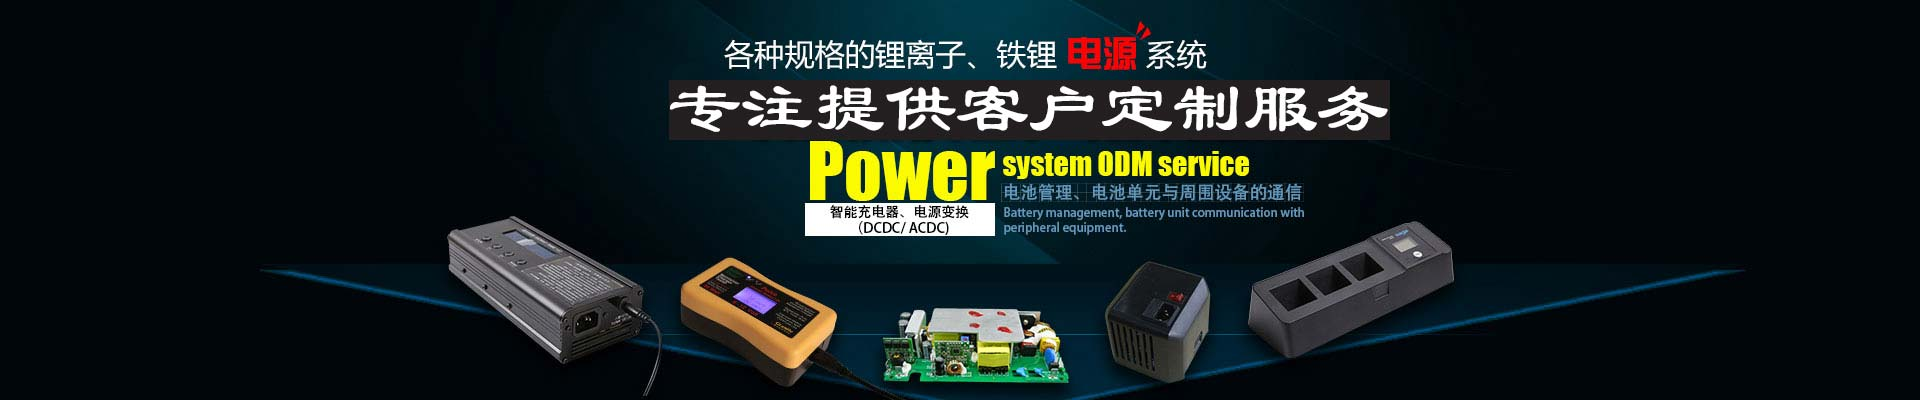 battery charger, car battery charger, lead acid battery charger, lipo charger, li-ion battery charger, nimh battery charger